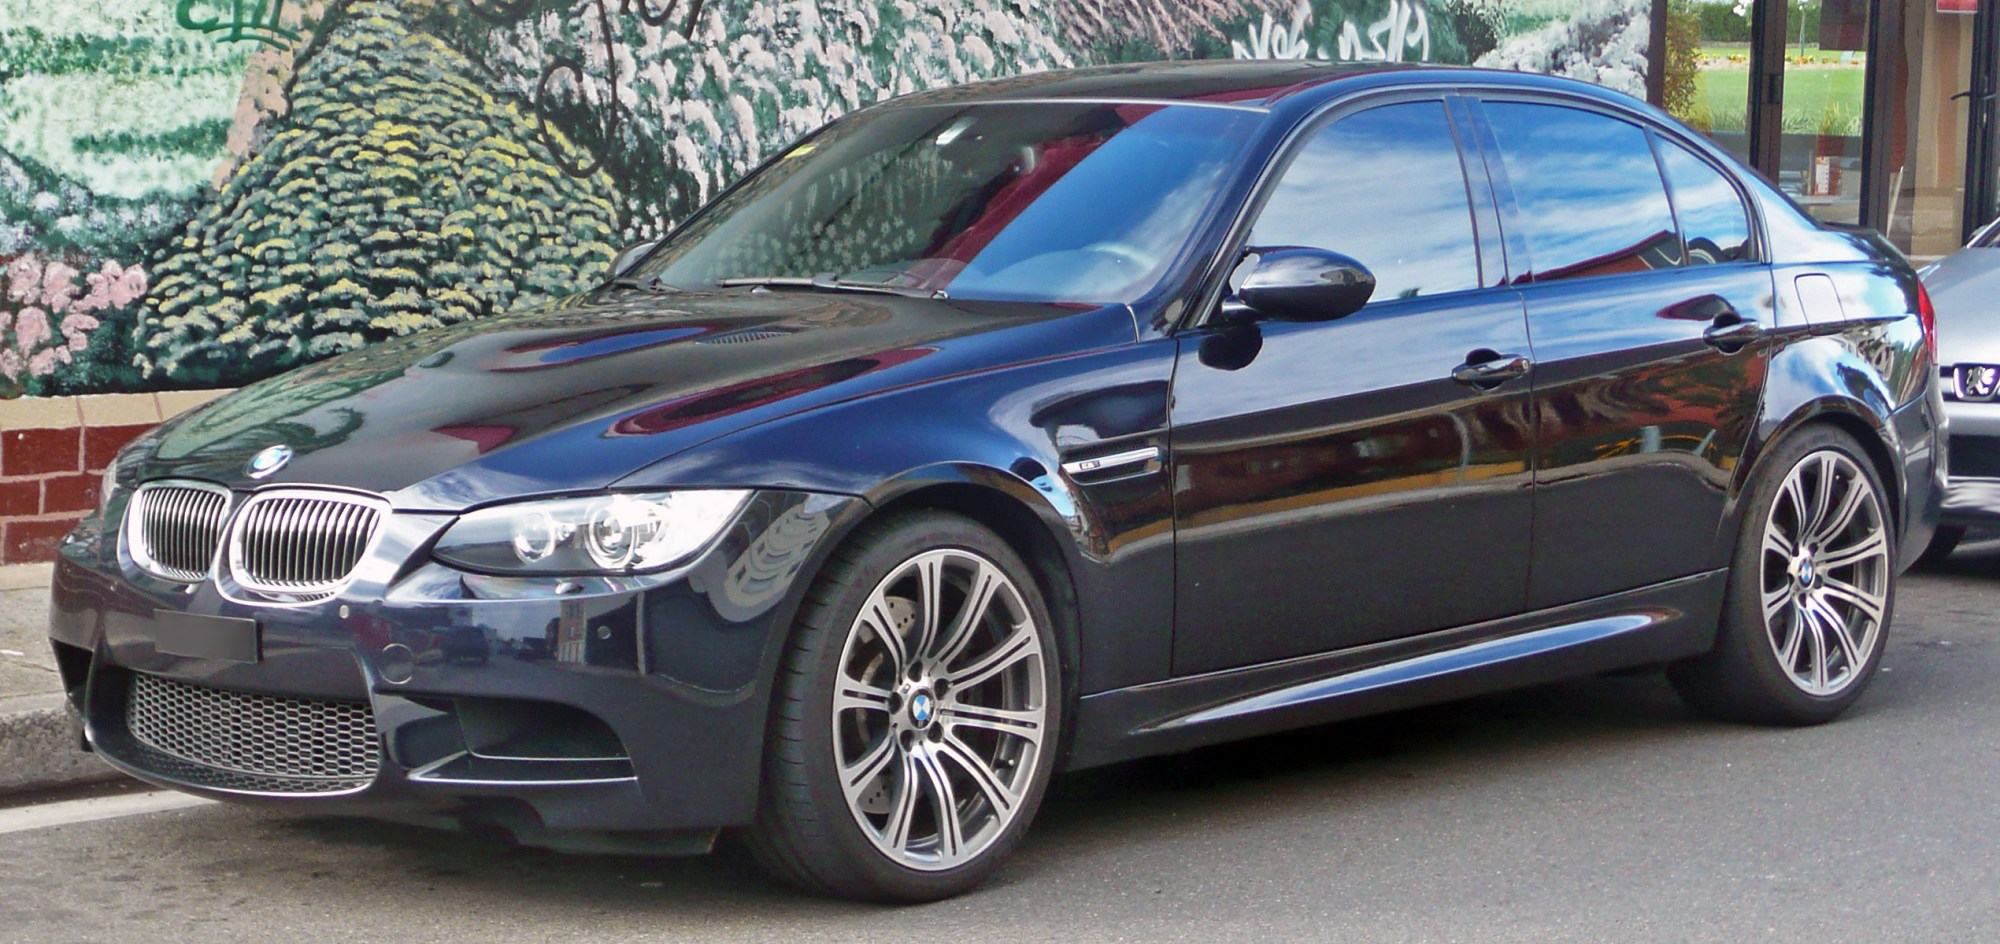 hight resolution of bmw m3 2010 8